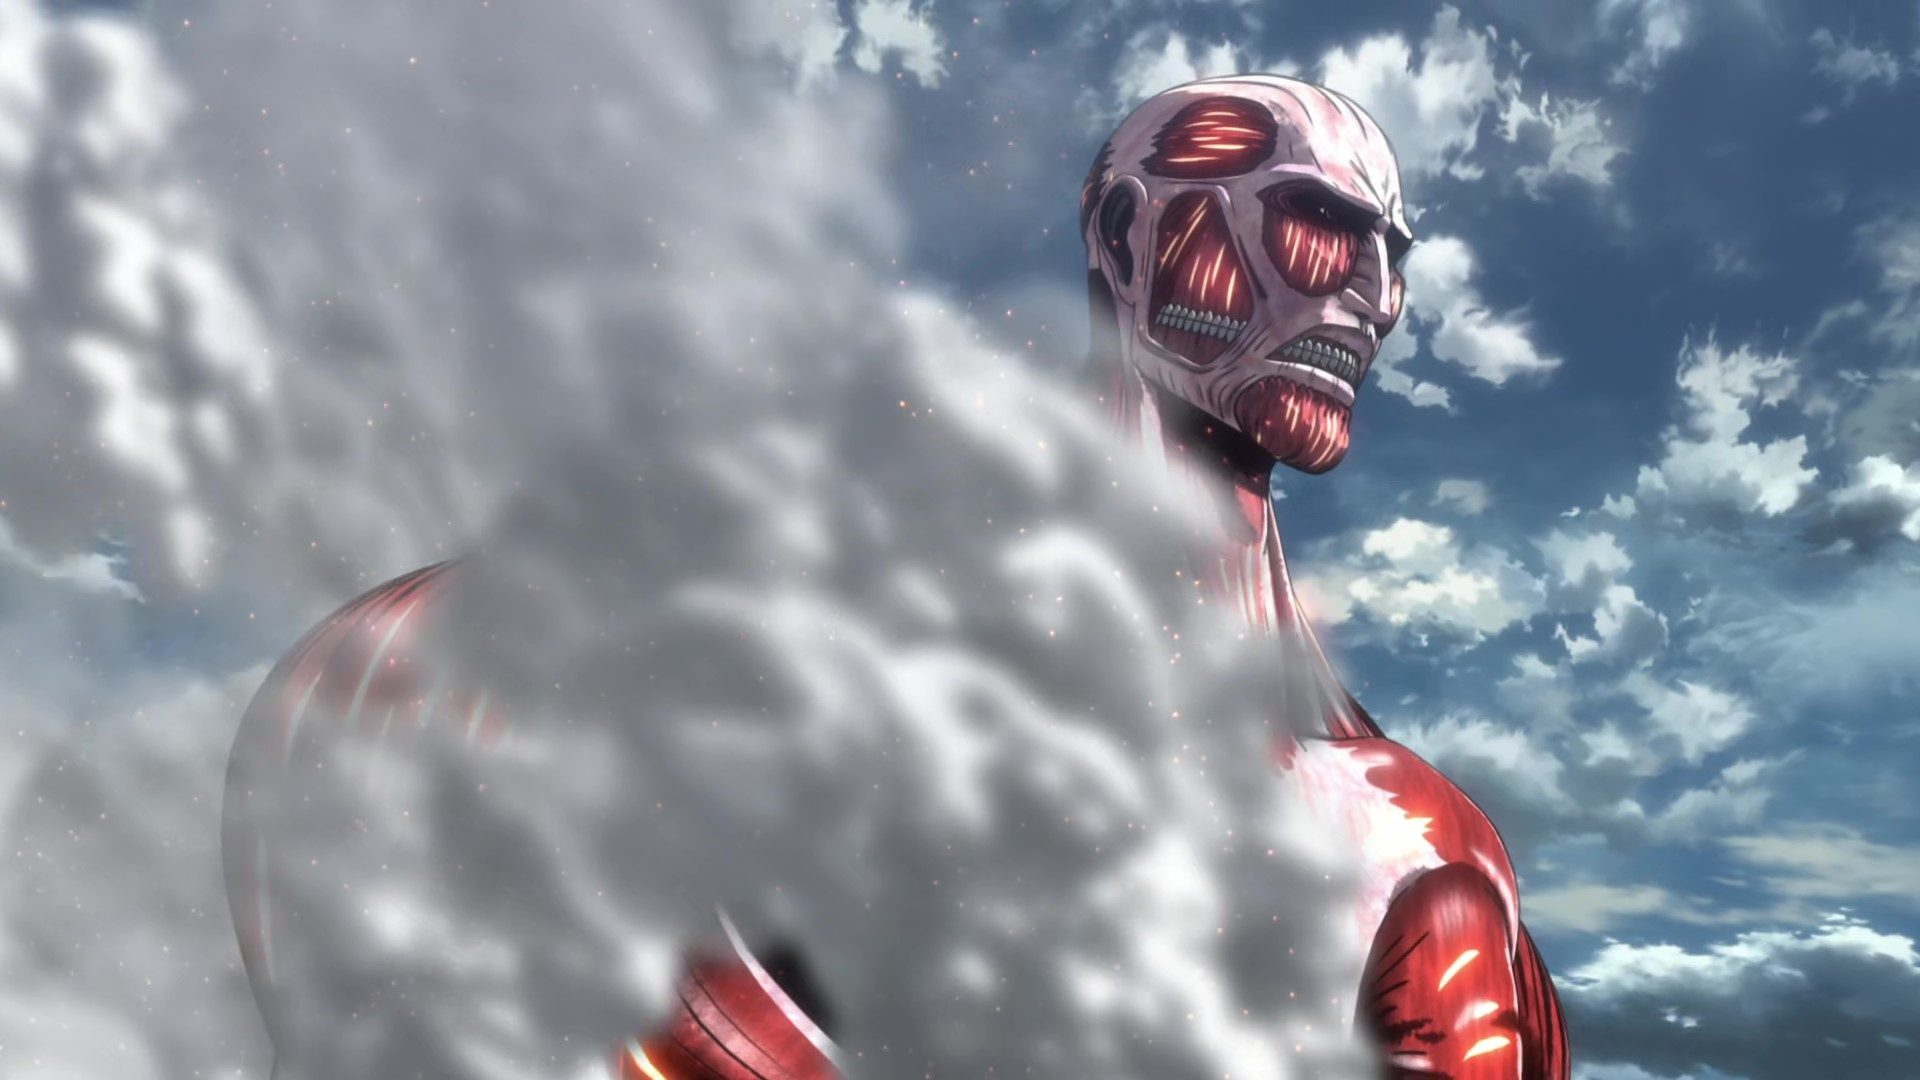 Images Of Is Season 3 Of Attack On Titan Dubbed